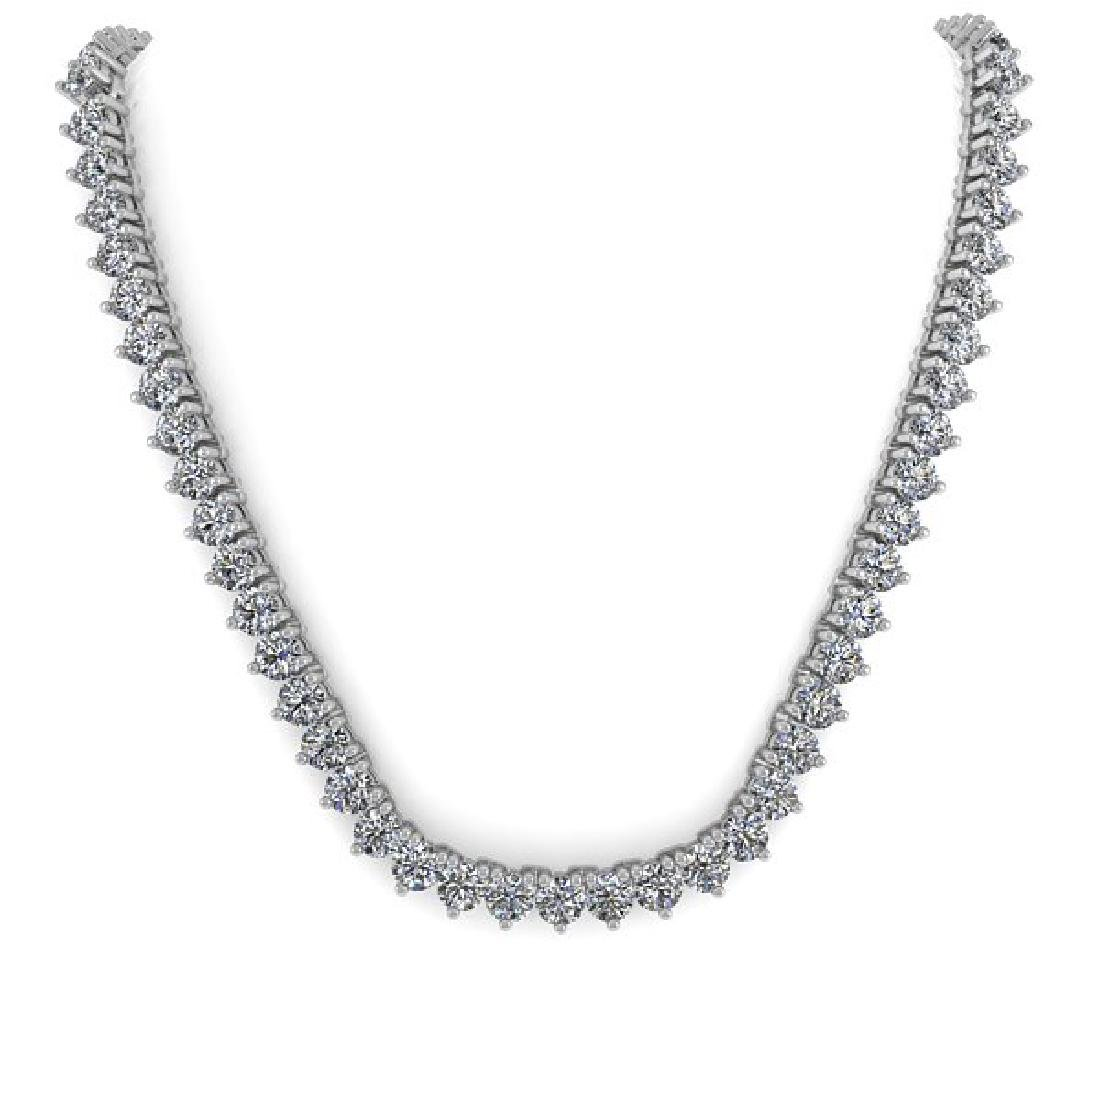 48 CTW Solitaire SI Diamond Necklace 18K White Gold - 2